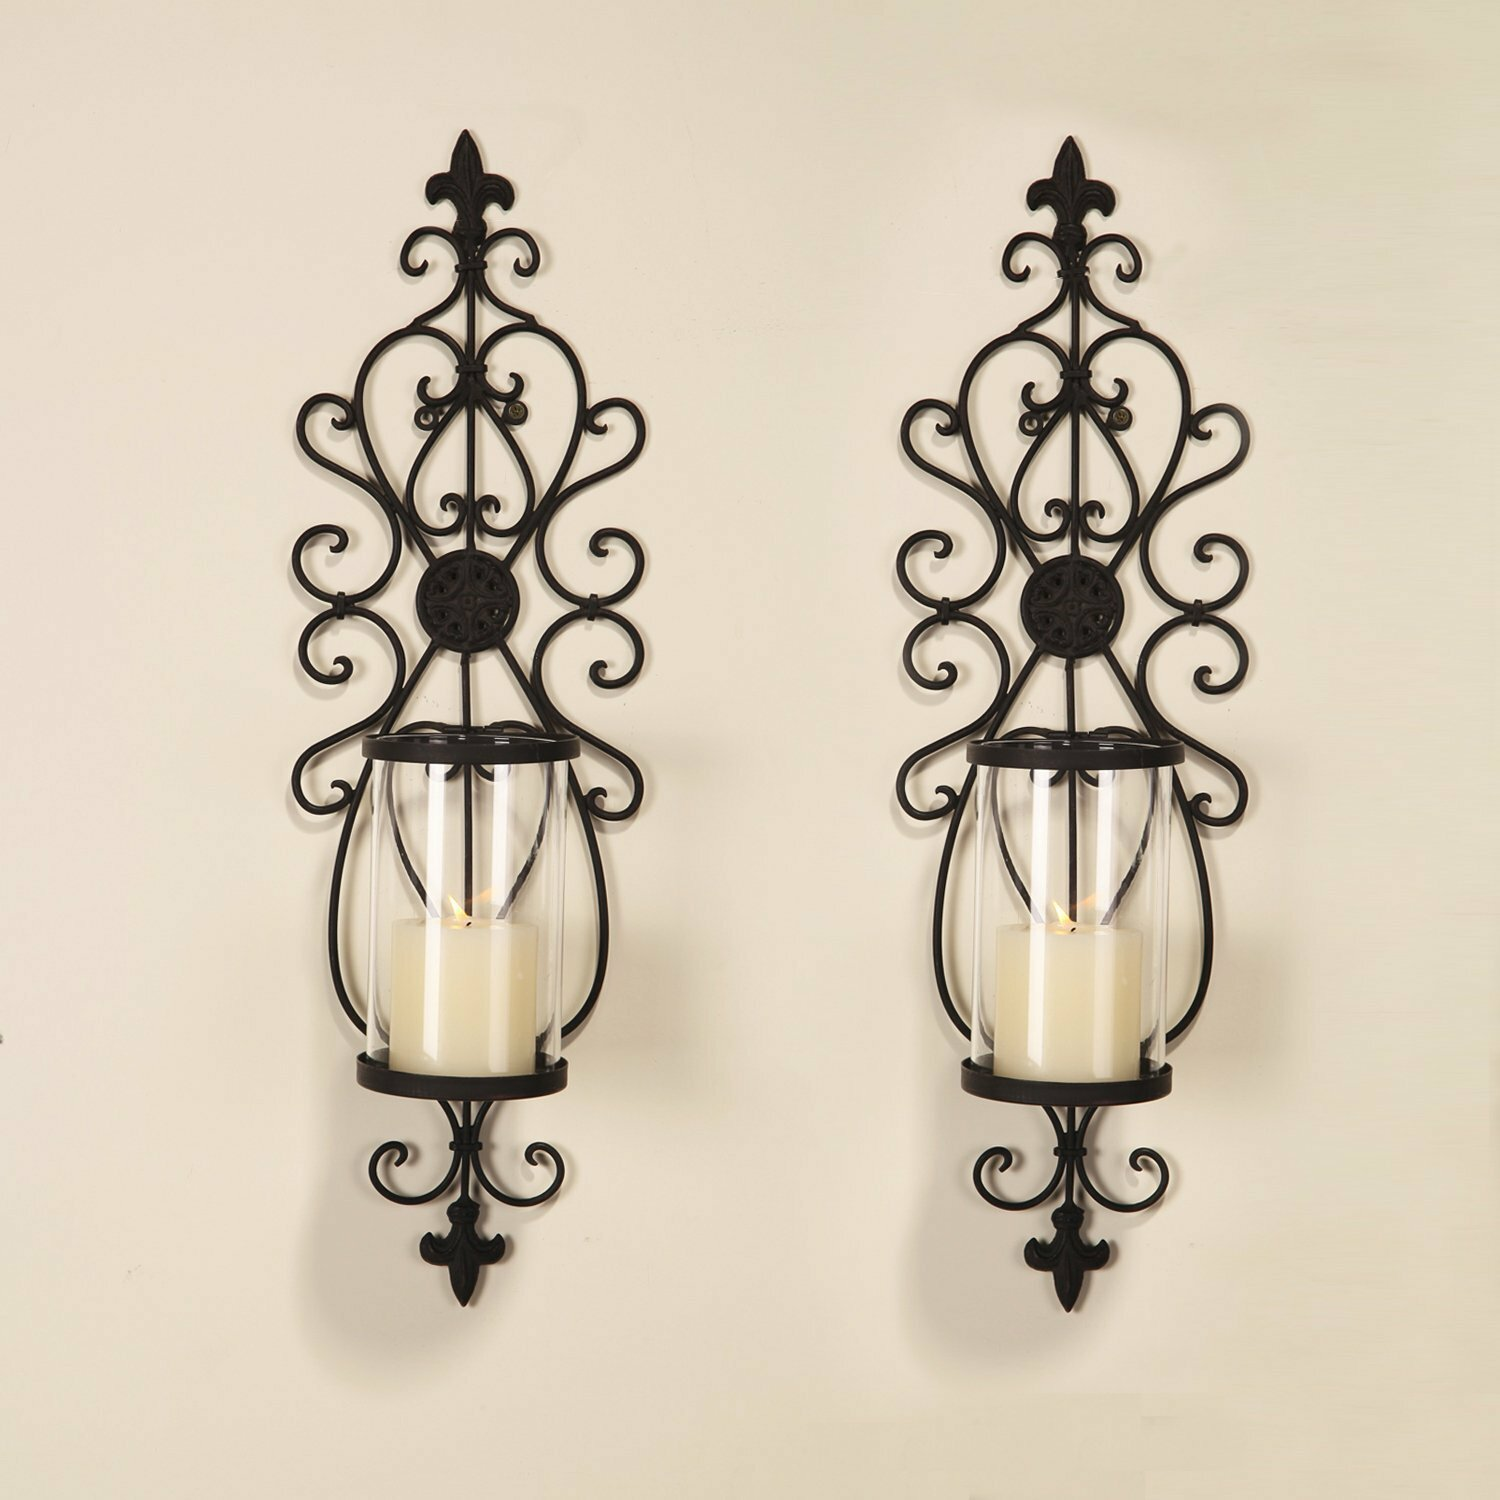 Darby Home Co Iron Wall Sconce Candle Holder U0026 Reviews | Wayfair